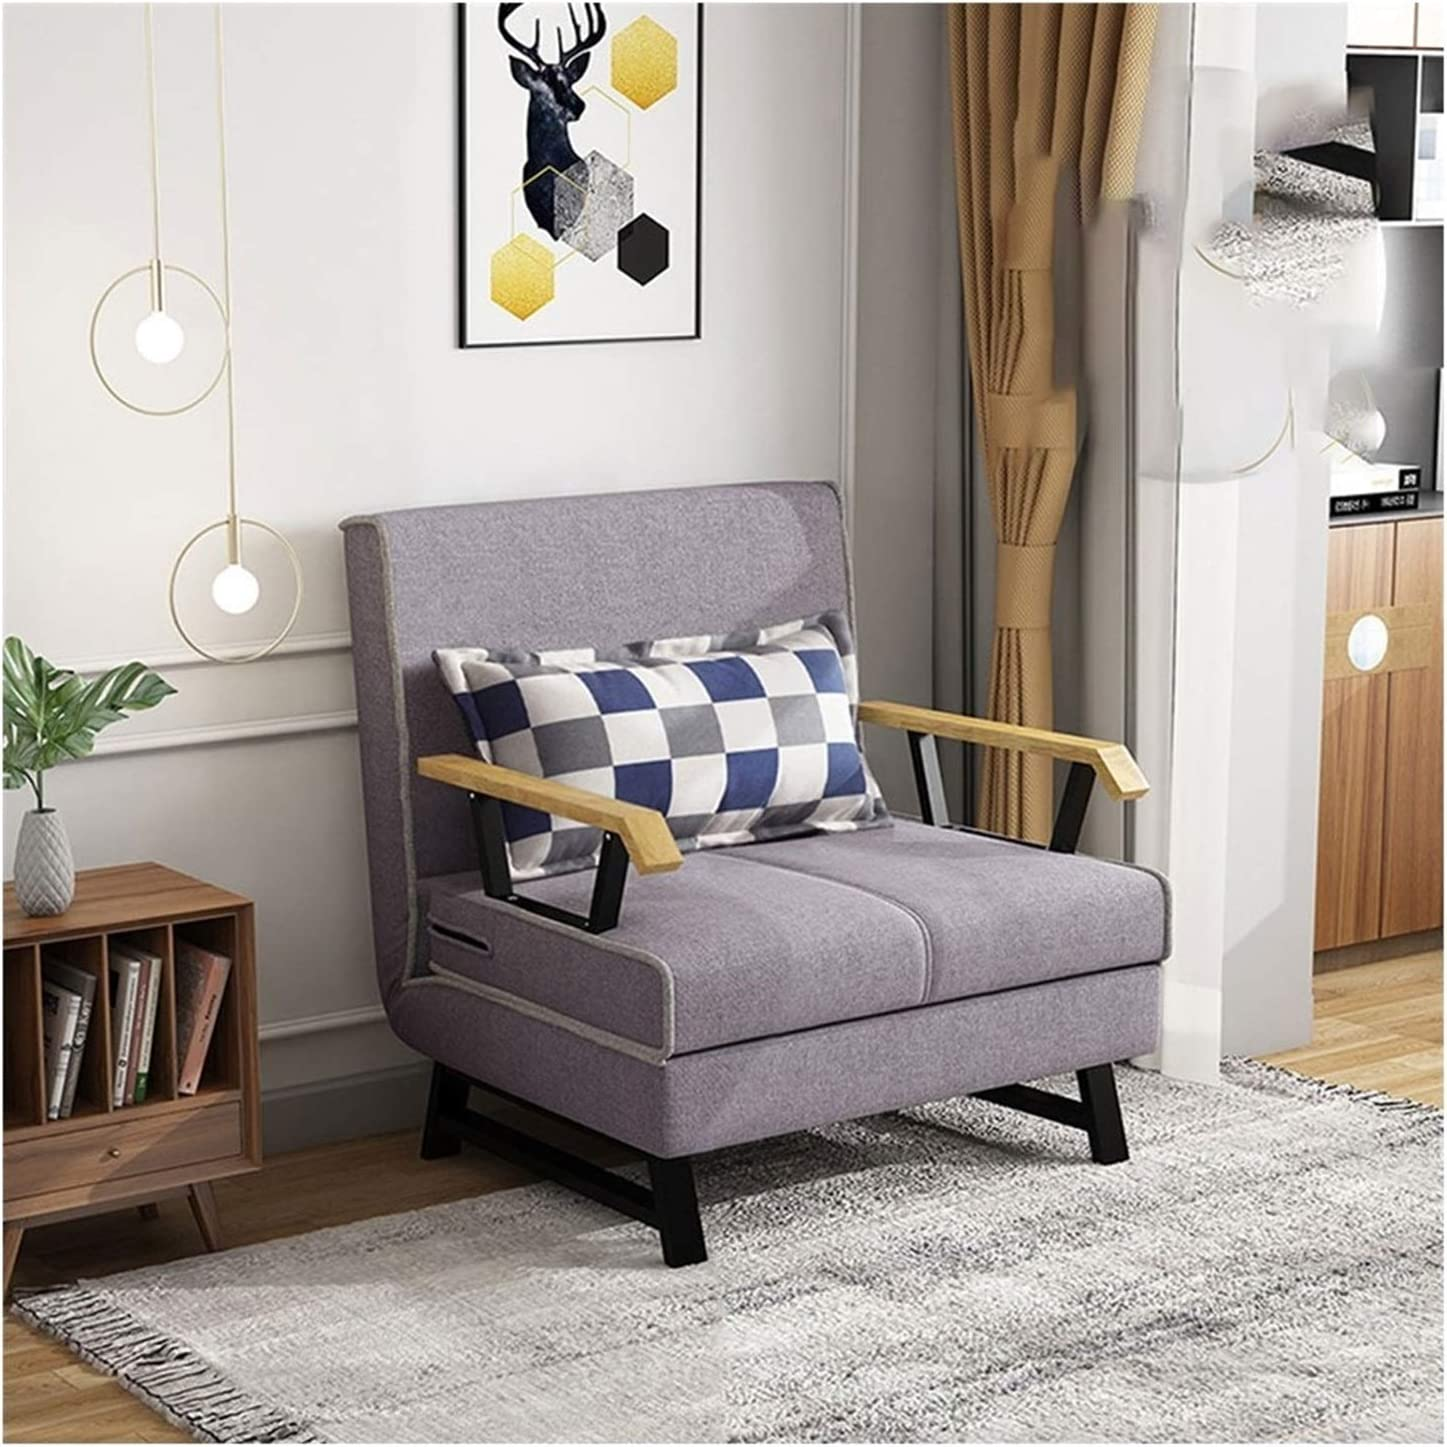 Sofa Bed Convertible Chair Futon Sturdy Couch and Max 48% OFF Durable Large discharge sale